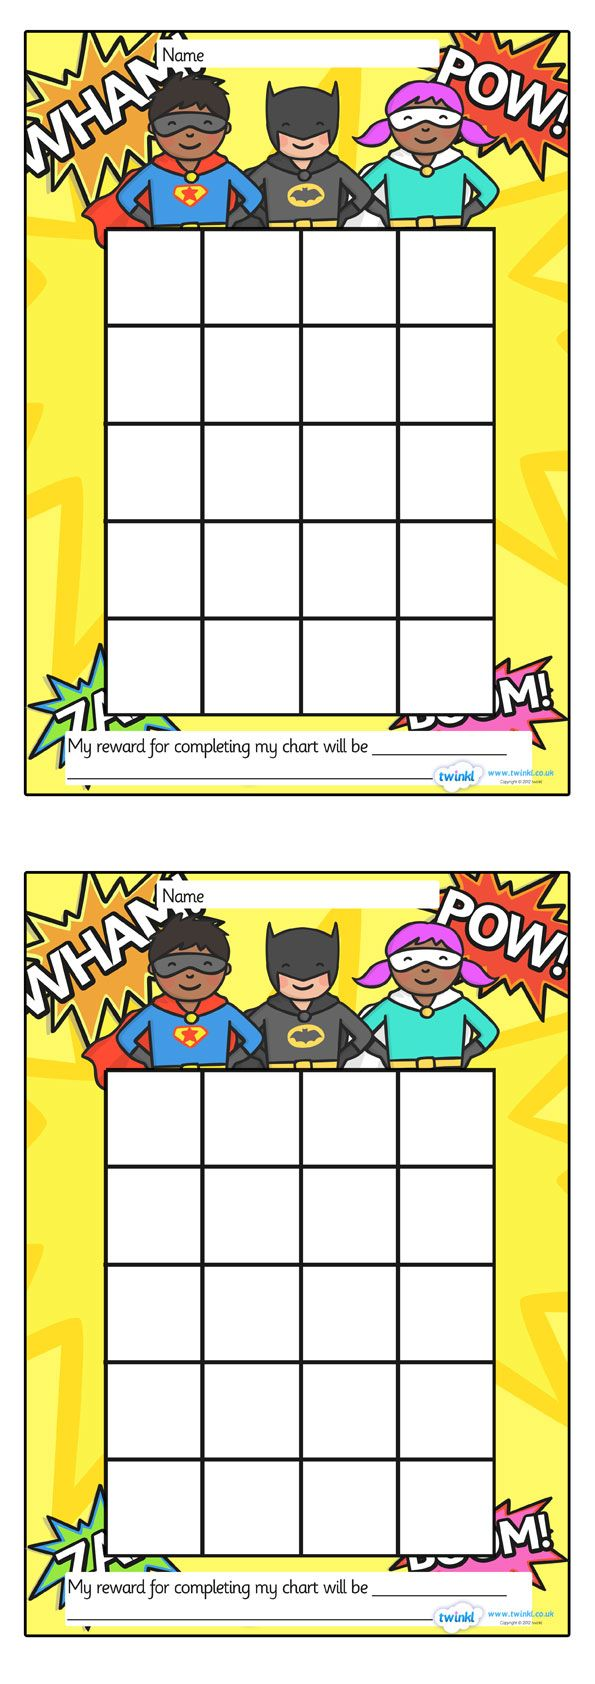 Twinkl resources superhero sticker stamp reward chart classroom printables for pre school kindergarten elementary school and beyond